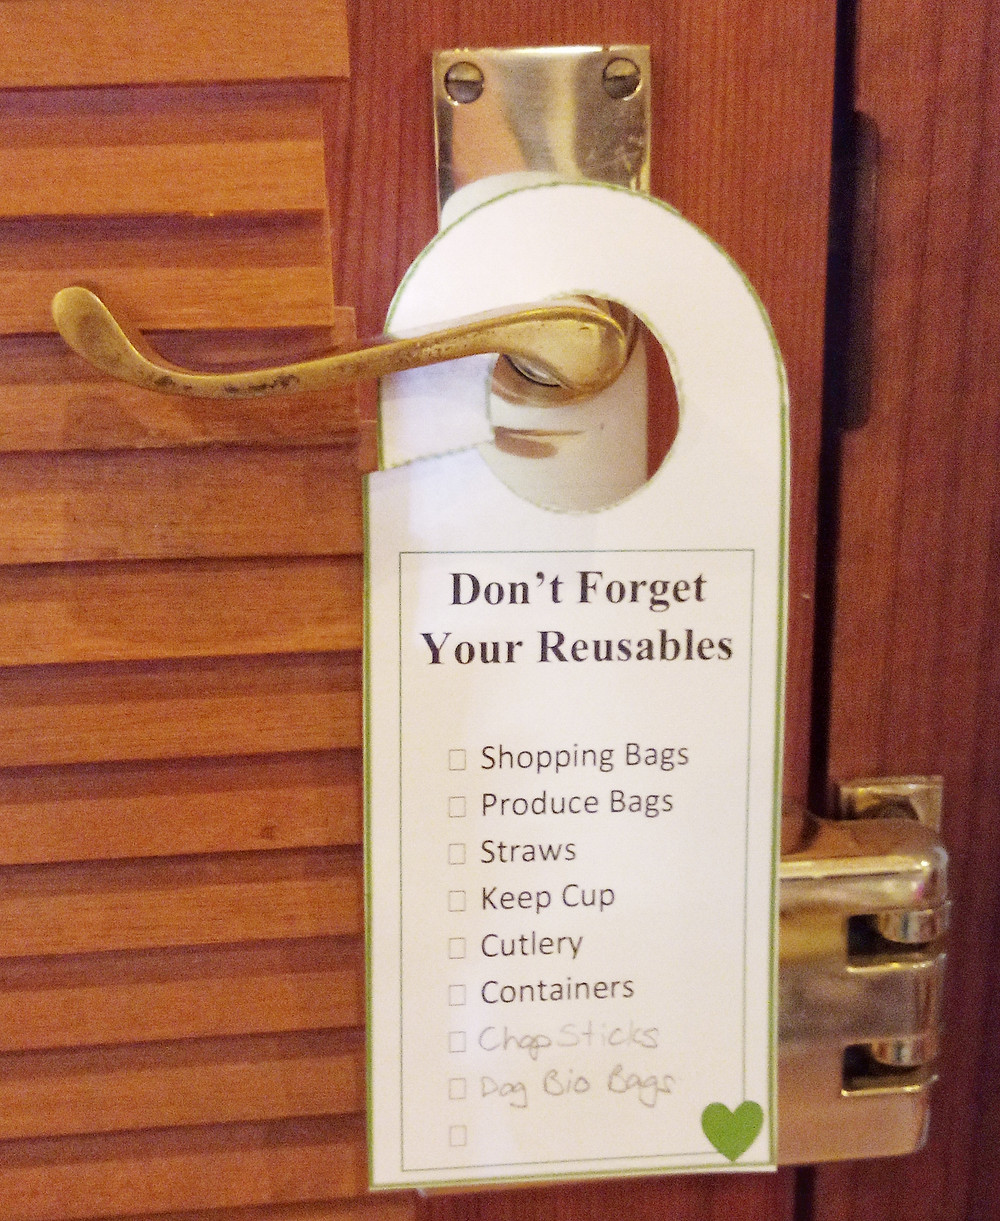 Don't Forget your reusables